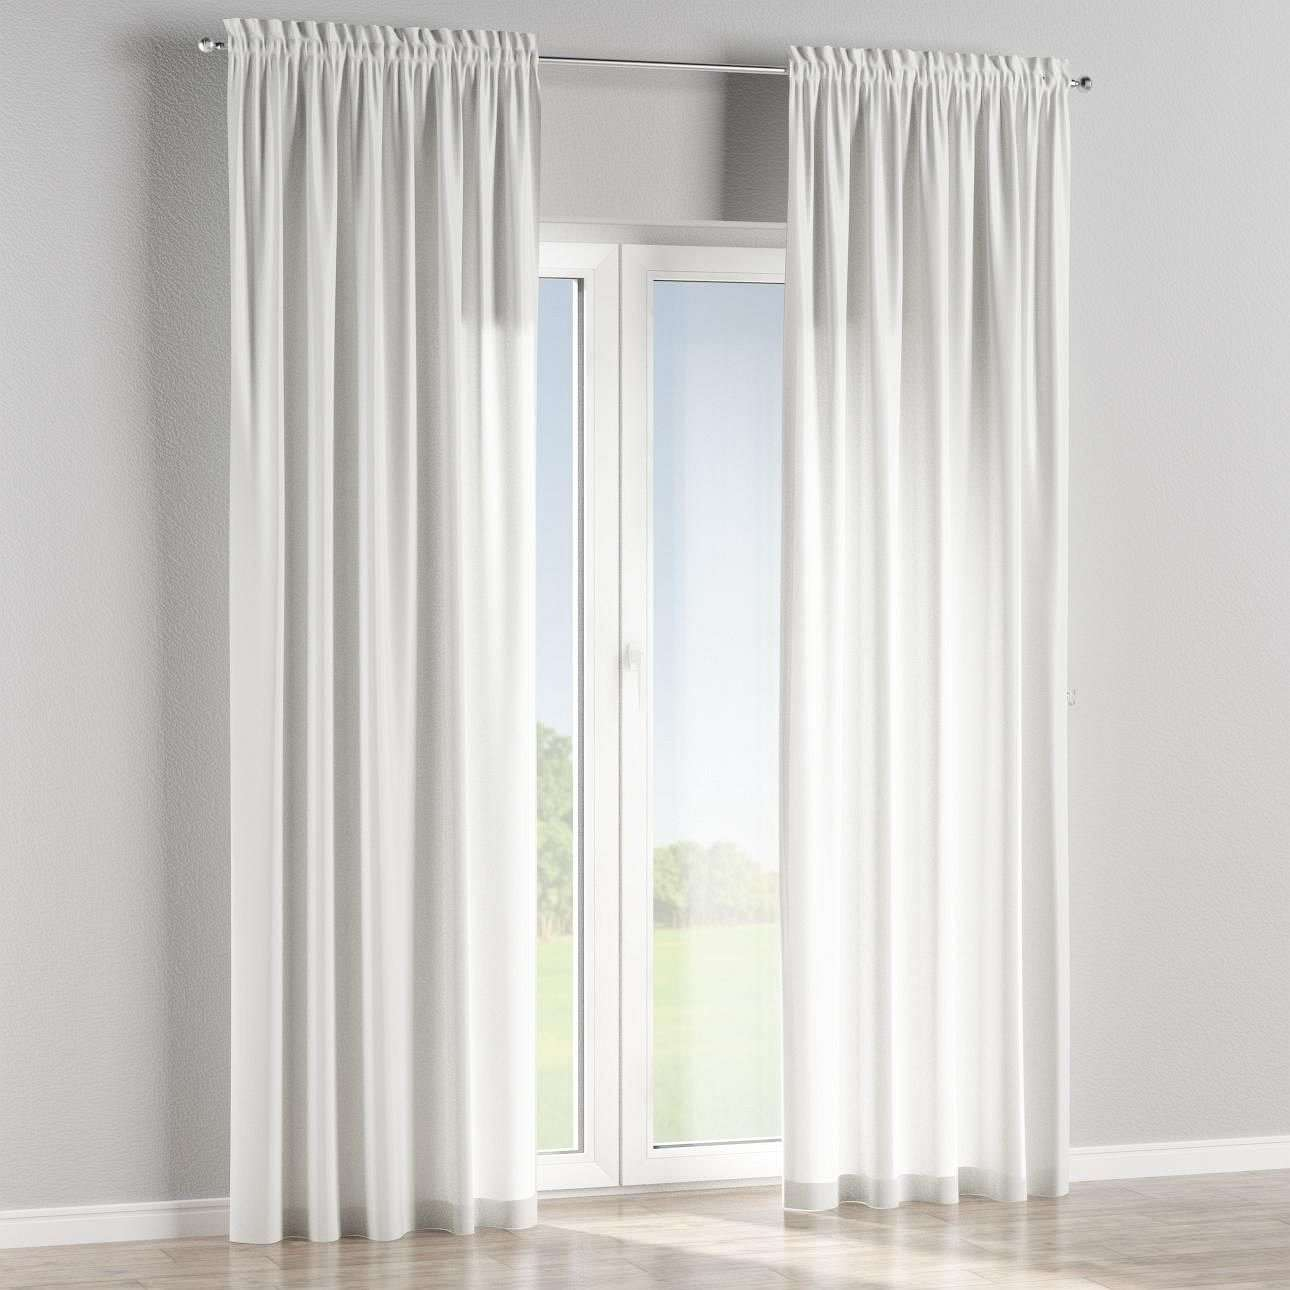 Slot and frill lined curtains in collection Bristol, fabric: 125-15